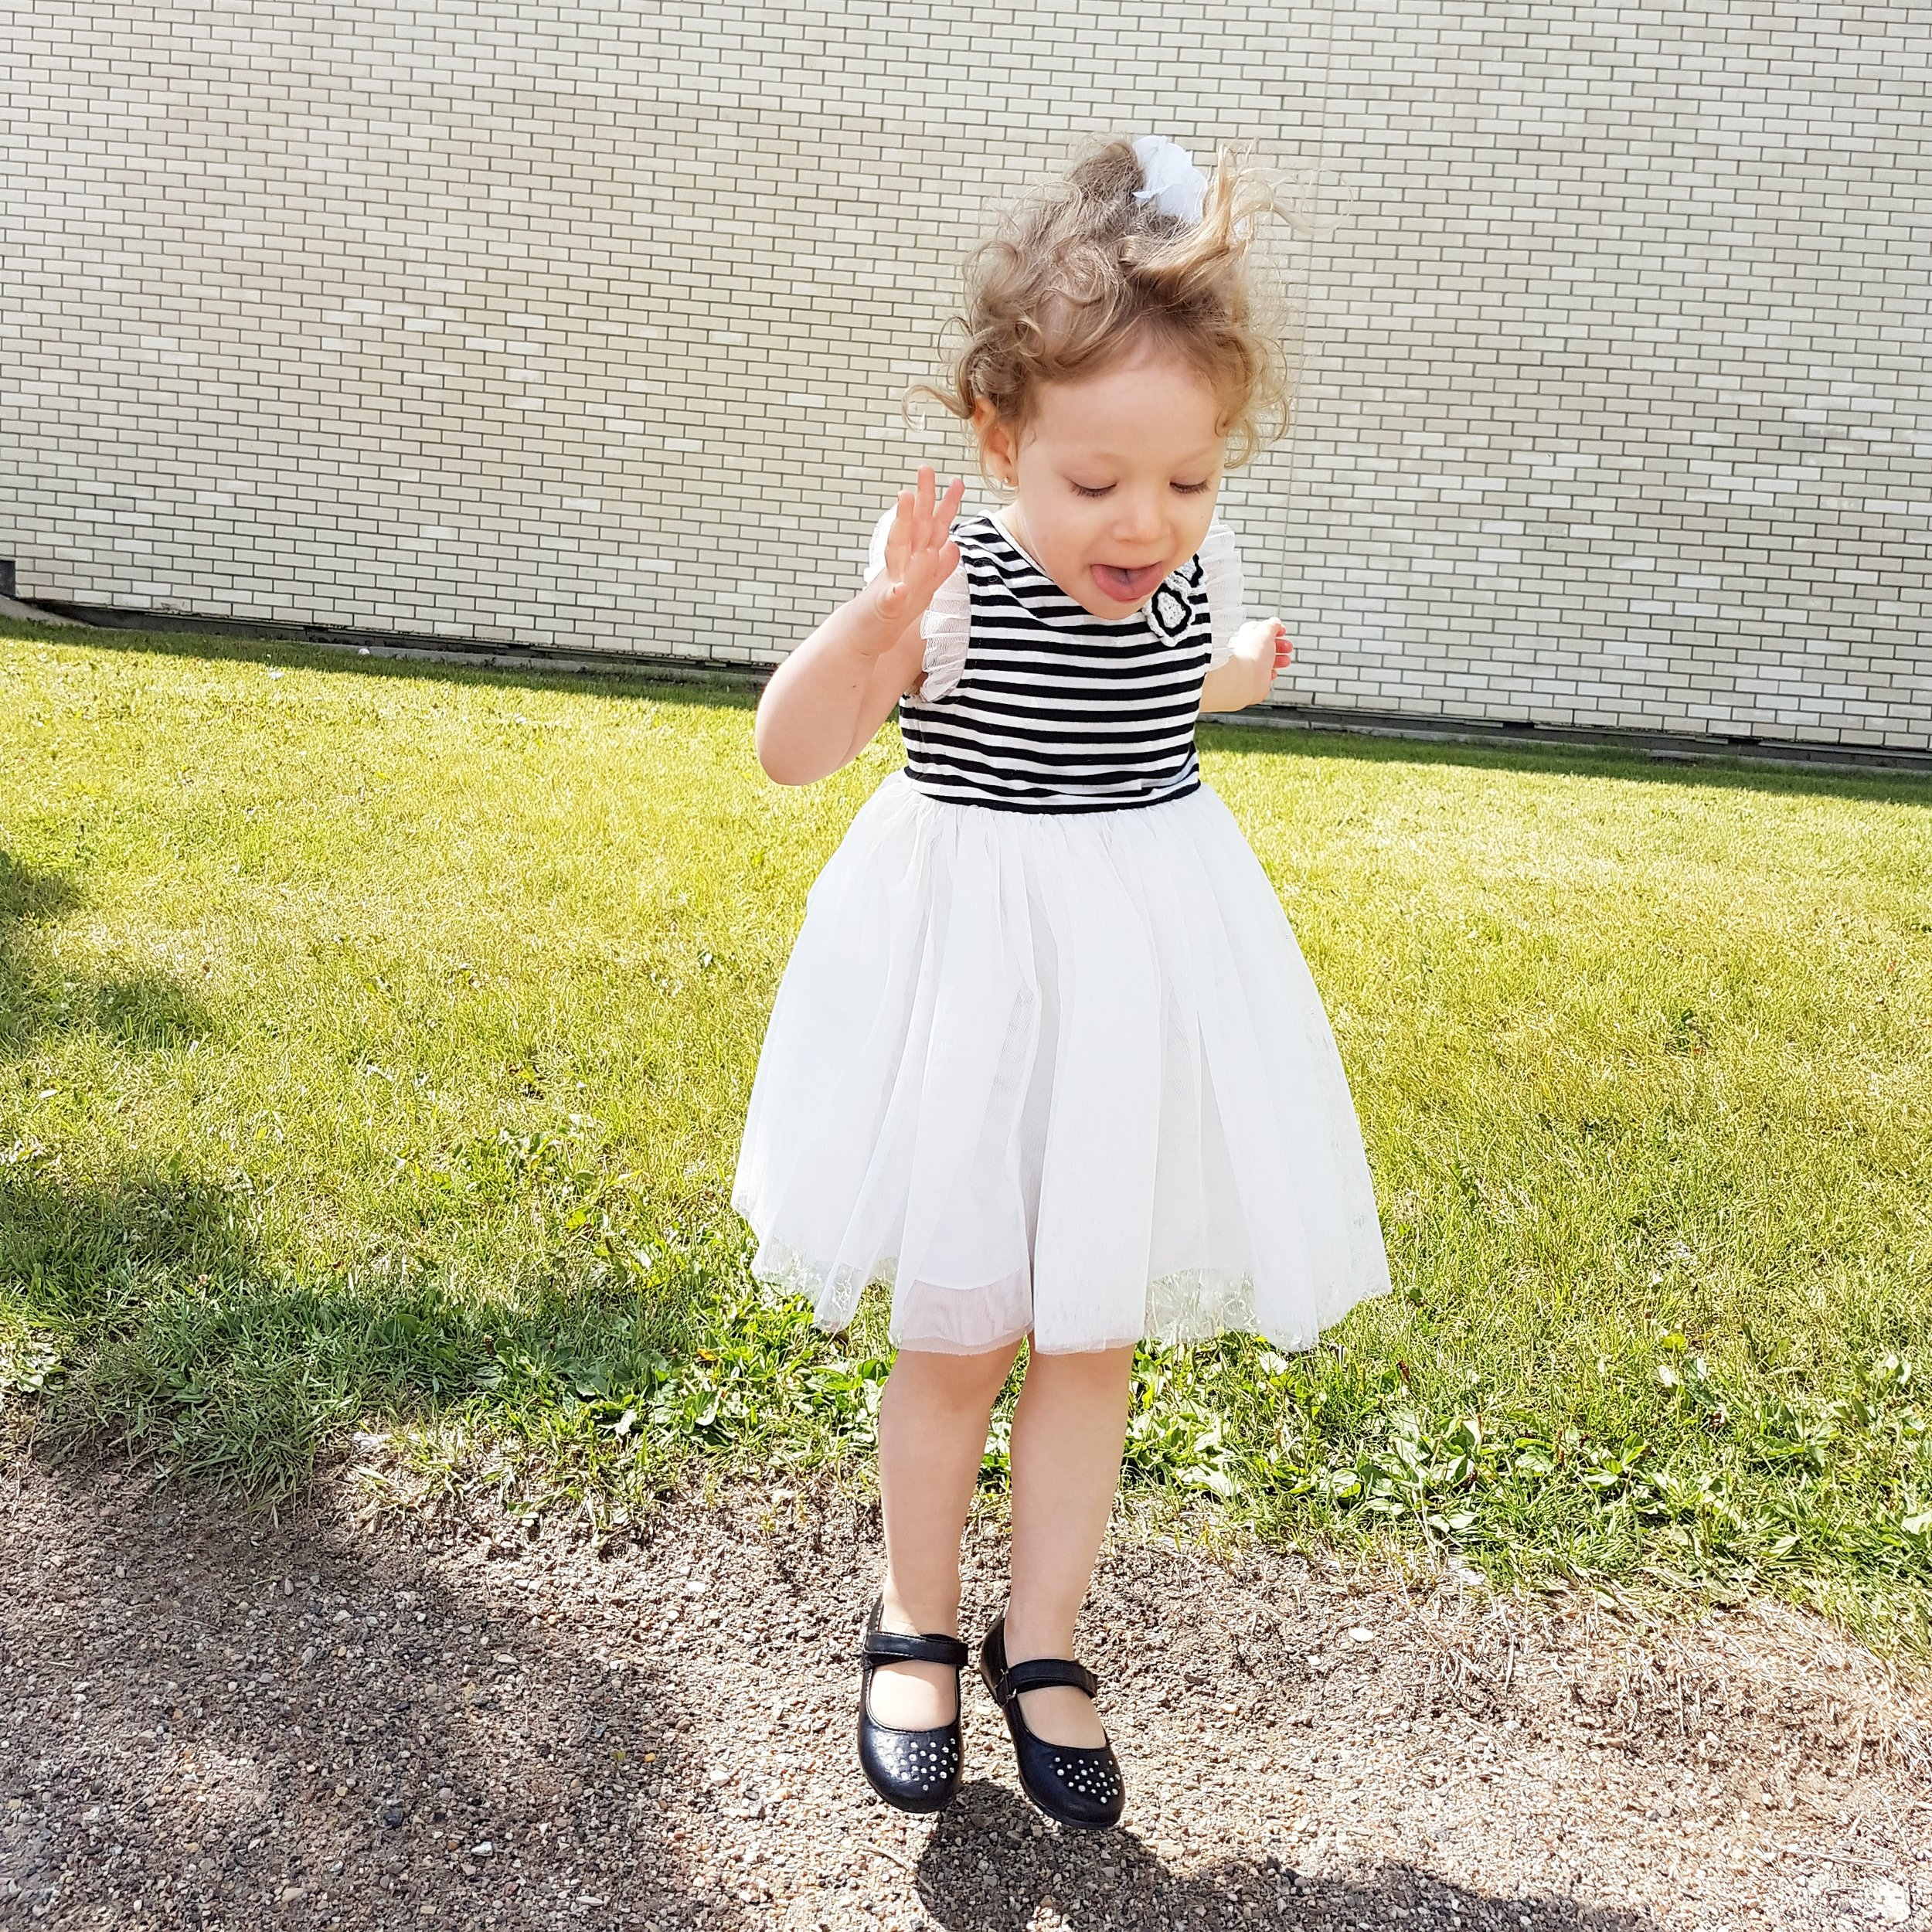 how to take better pictures of kids using cell phone burst mode